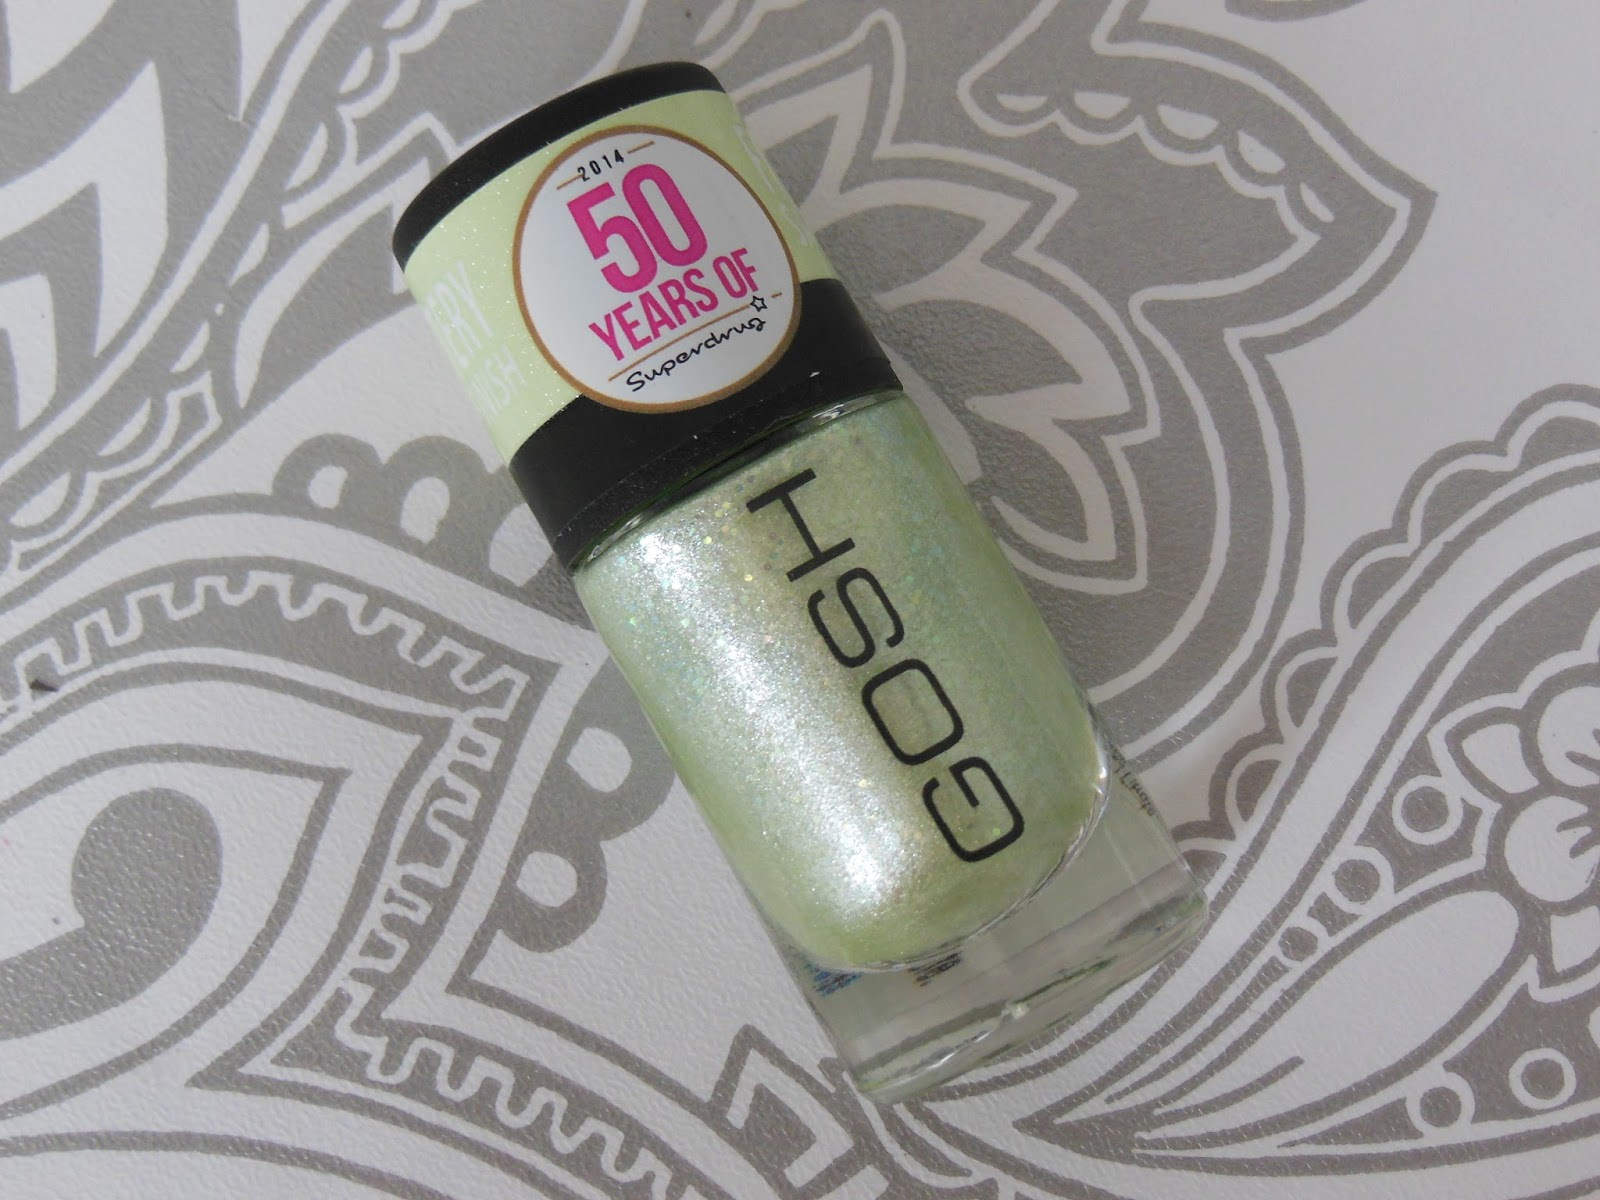 GOSH limited edition nail polish for superdrug